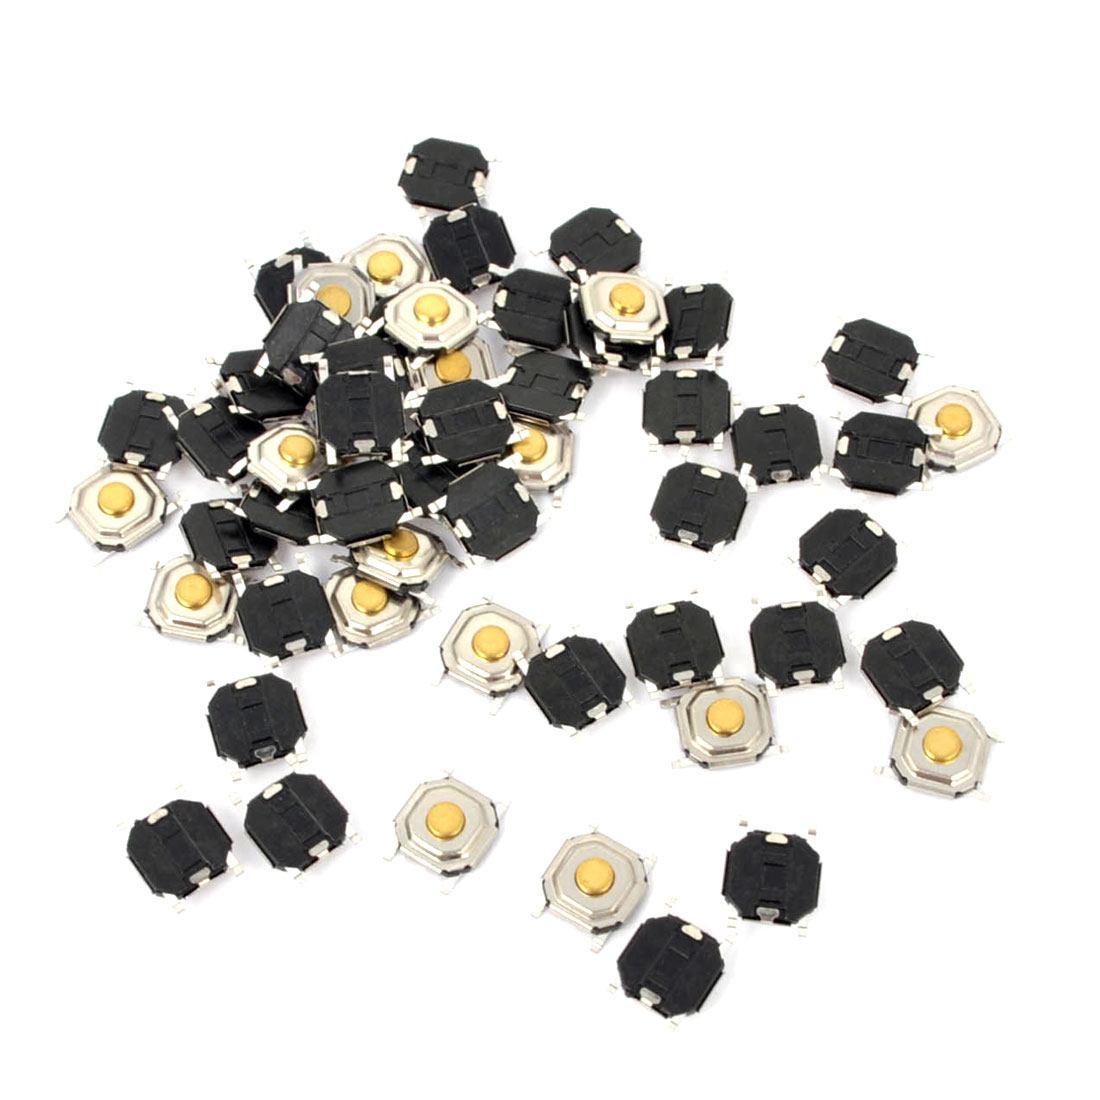 55Pcs Momentary Tact Tactile Push Button Switch 4mmx4mmx1.6mm 4-pin